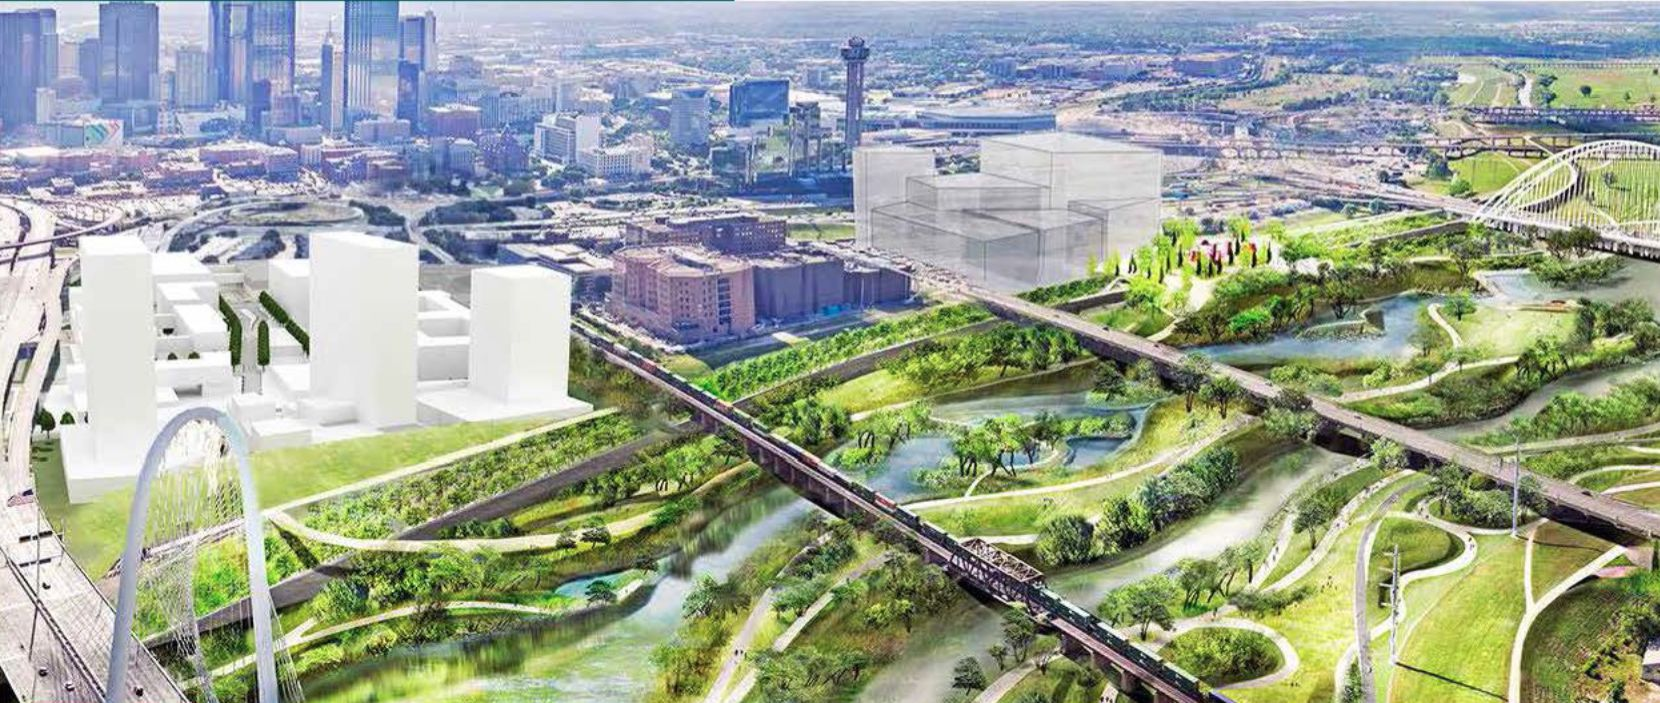 The planned 505 Riverfront mixed-use project would be adjacent to the planned Trinity River Park.